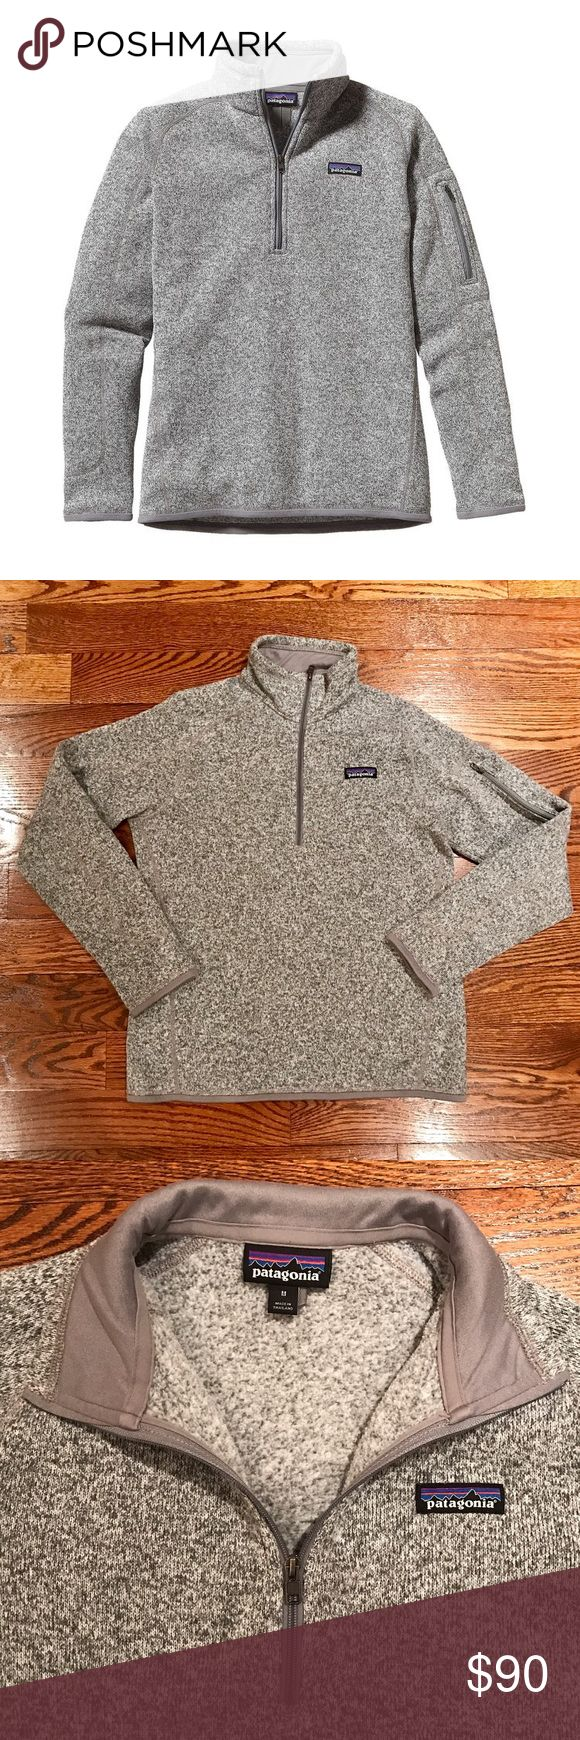 Patagonia Better Sweater 1/4 Zip Excellent condition!! Authentic Patagonia Women's Better Sweater® 1/4-Zip Fleece. In Birch white. So comfy and cozy !!                                      This knitted, cross-dye pullover sweater combines the aesthetic of wool with the easy care of polyester fleece dyed with a low-impact process that significantly reduces the use of dyestuffs, energy and water compared to conventional dyeing methods. Quarter length front zipper with wind flap and…